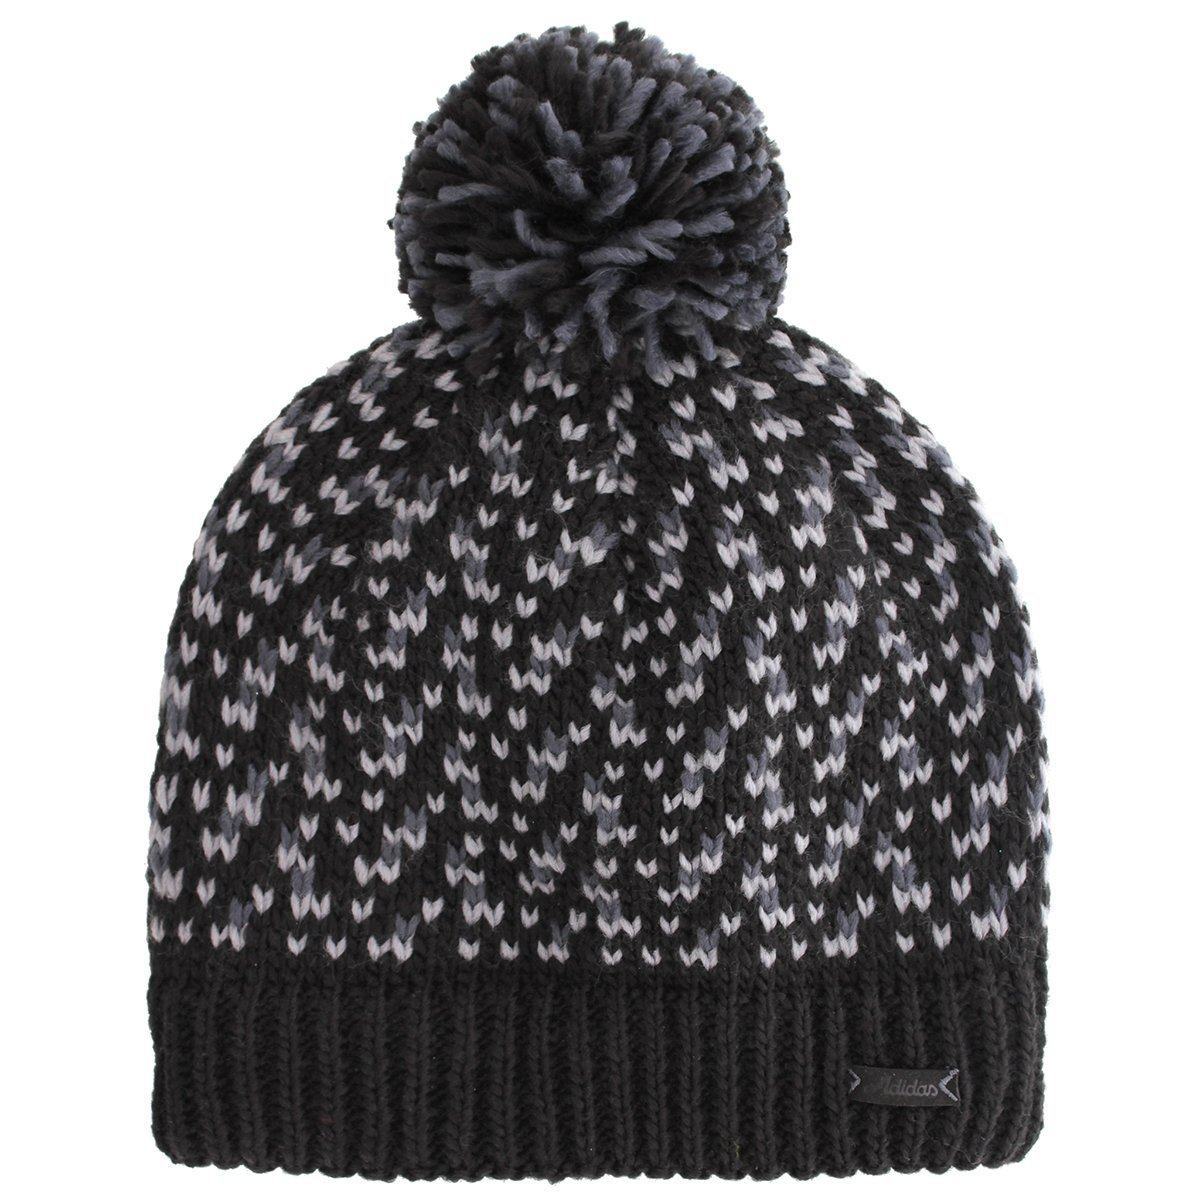 Adidas Womens Paradise Ballie Golf Beanie Hats